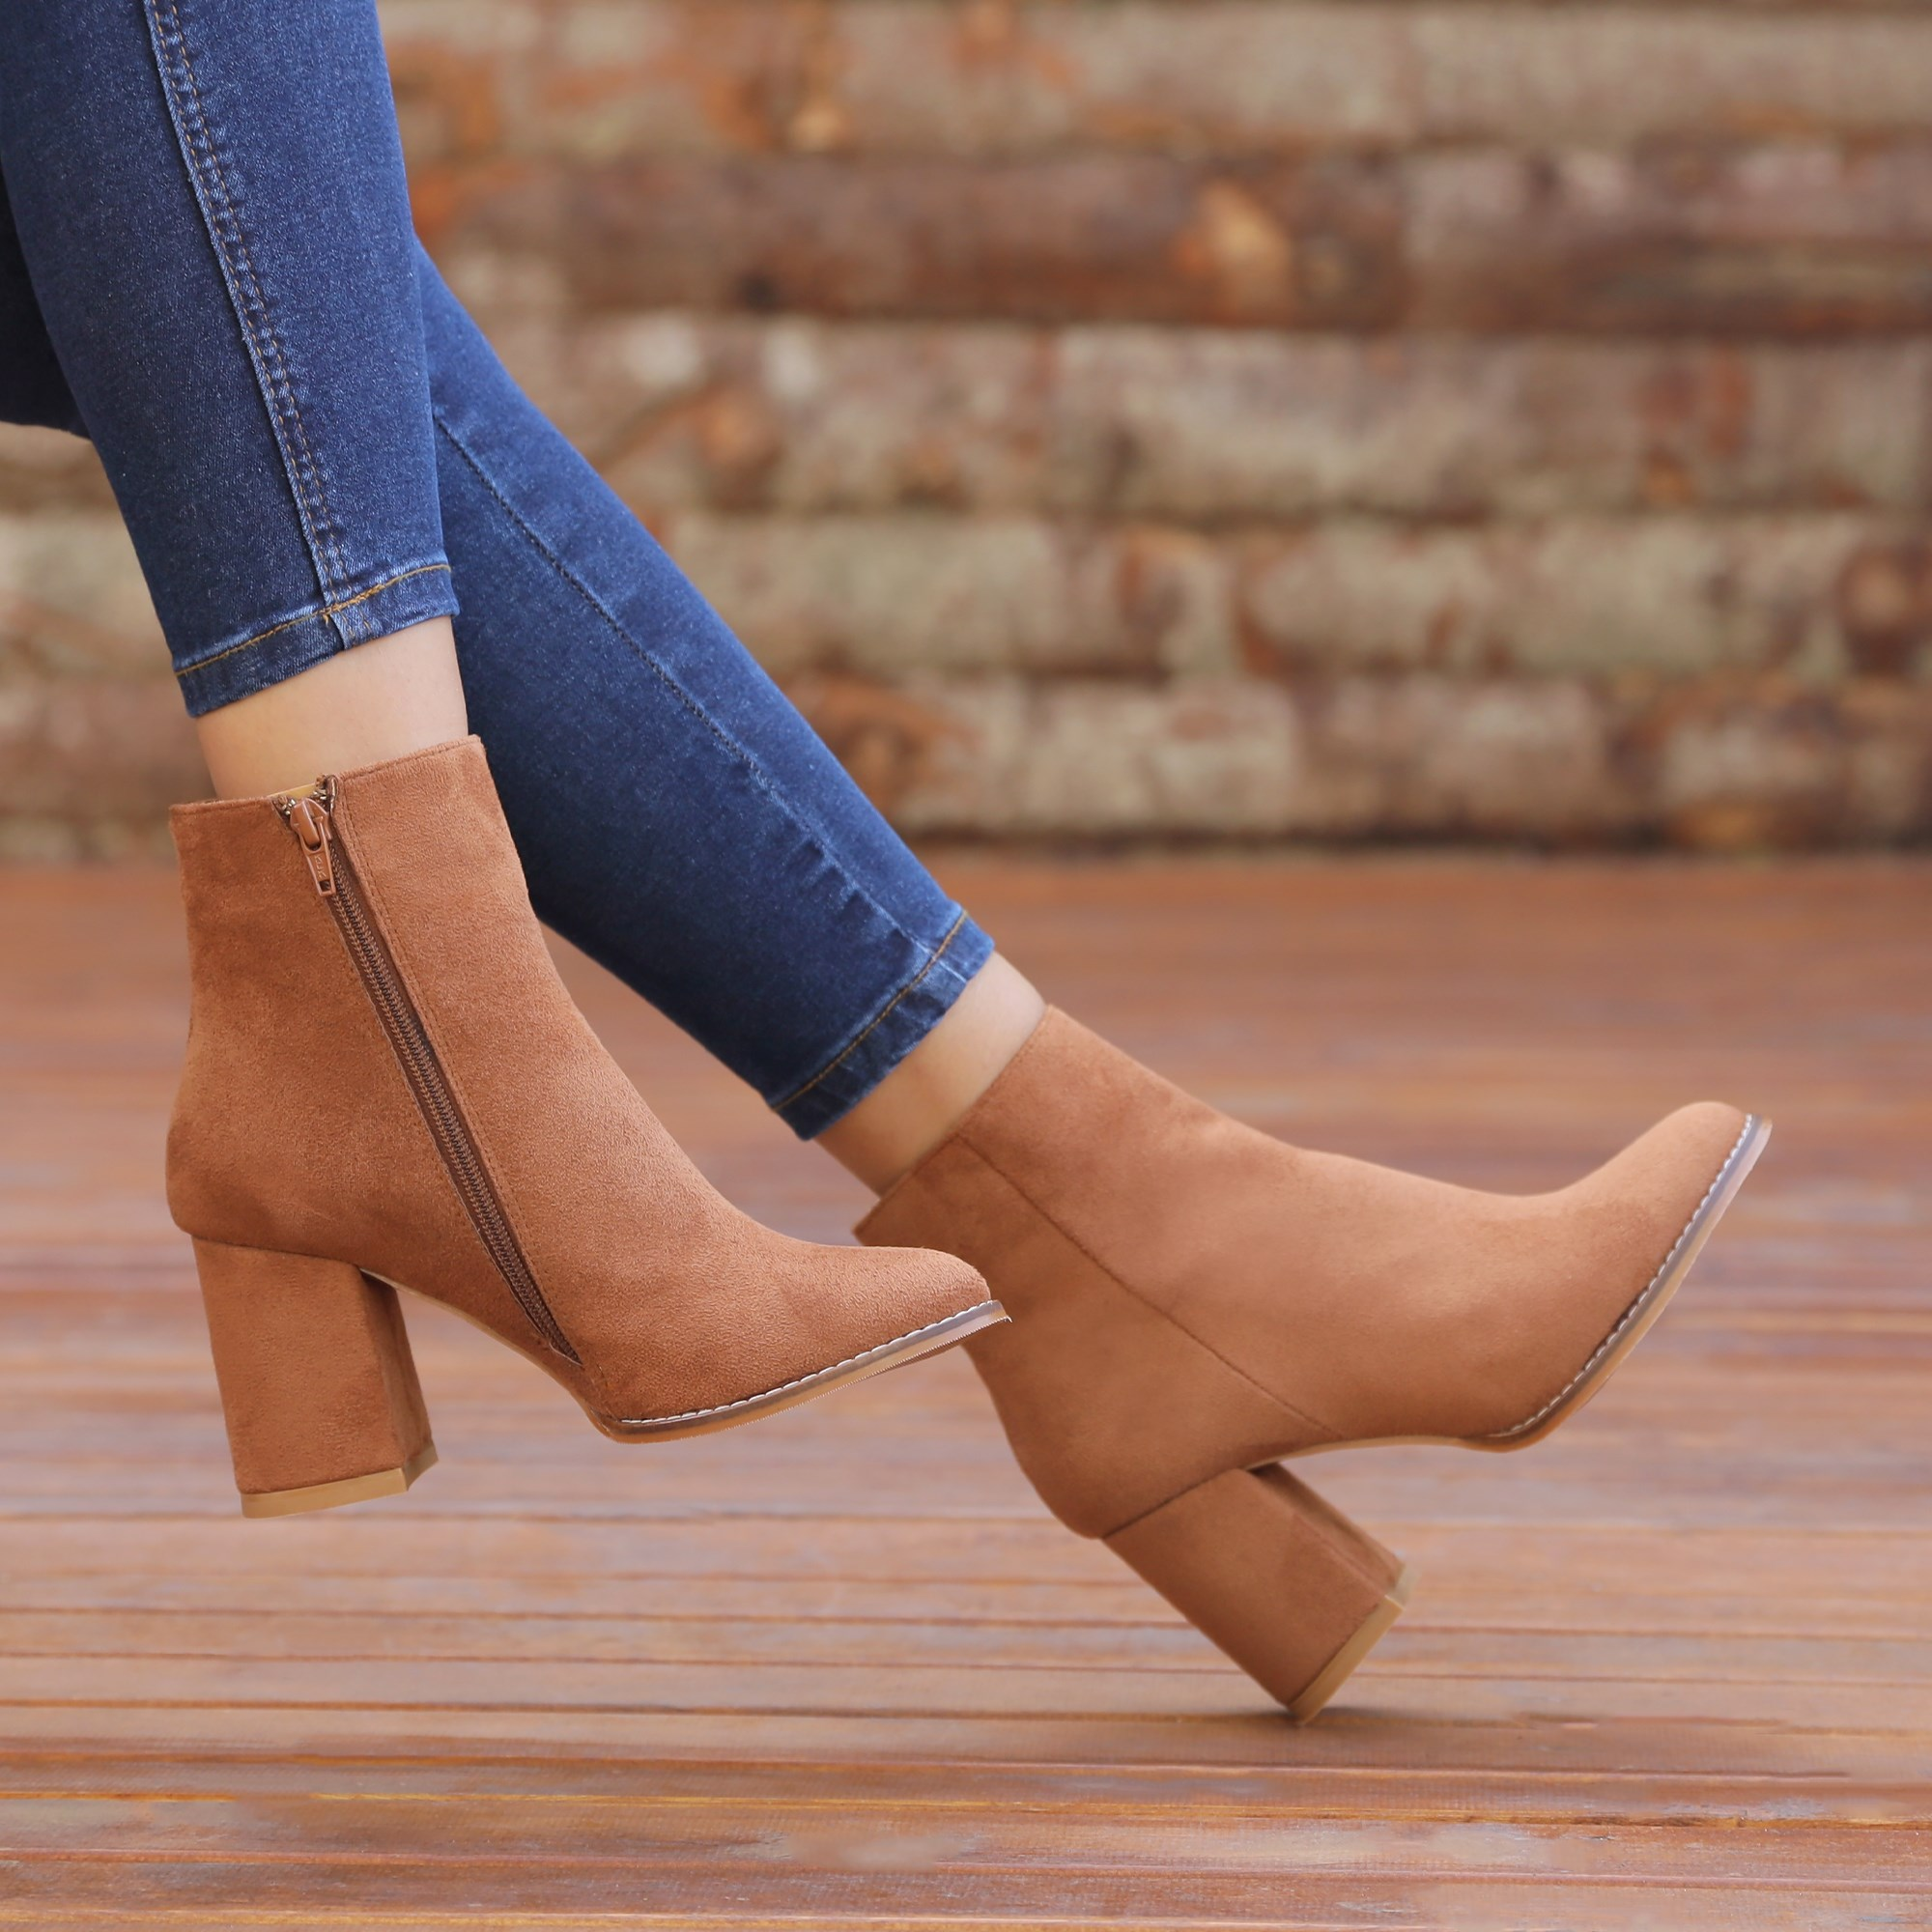 Kotiska Suede Taba Colored Thick Heels Boots